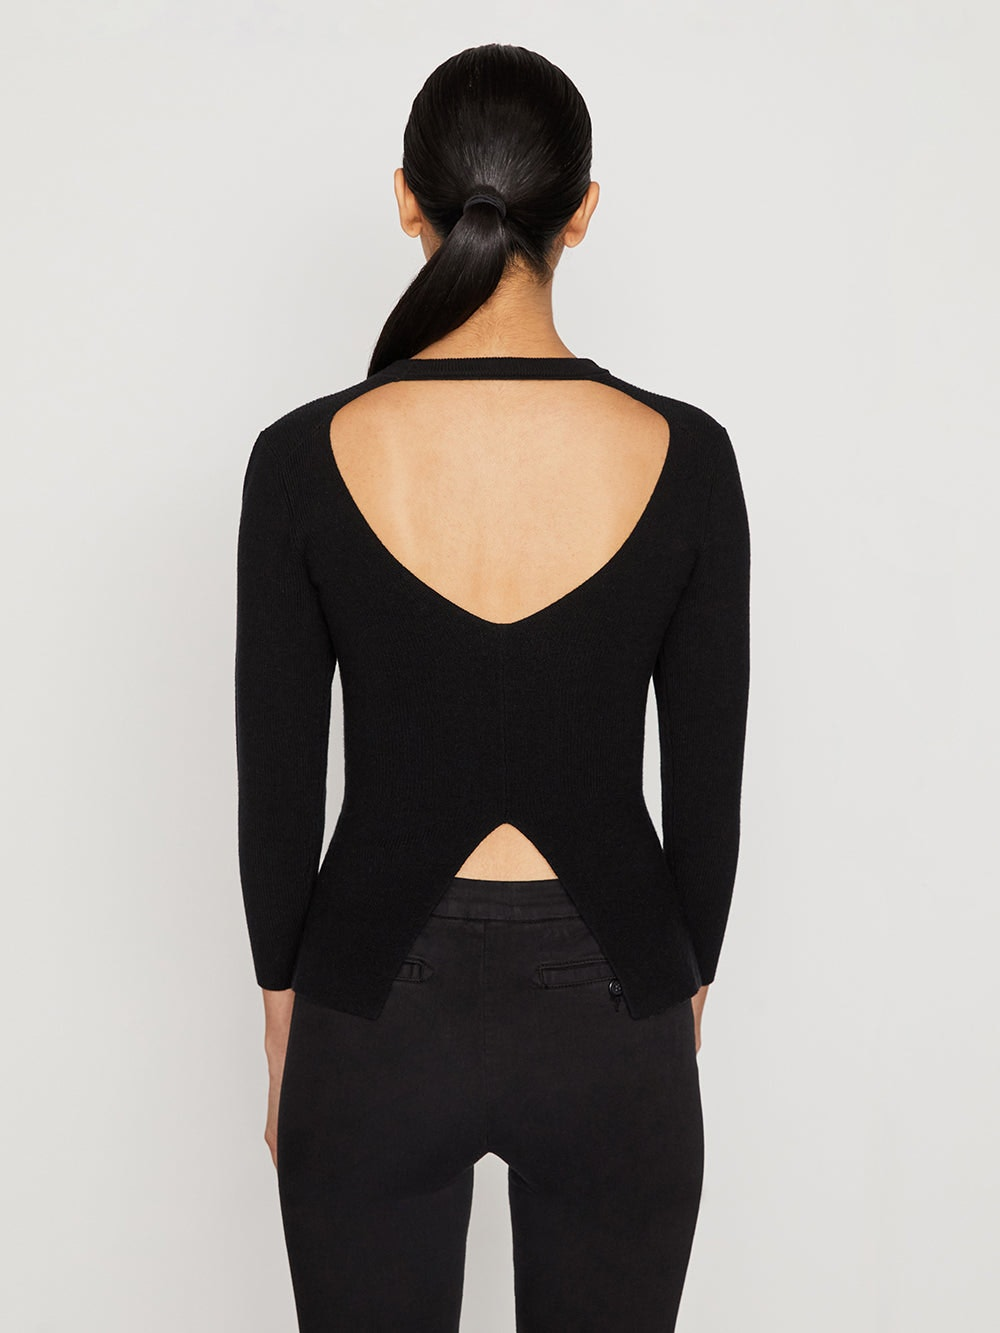 sweater back view alt:hover